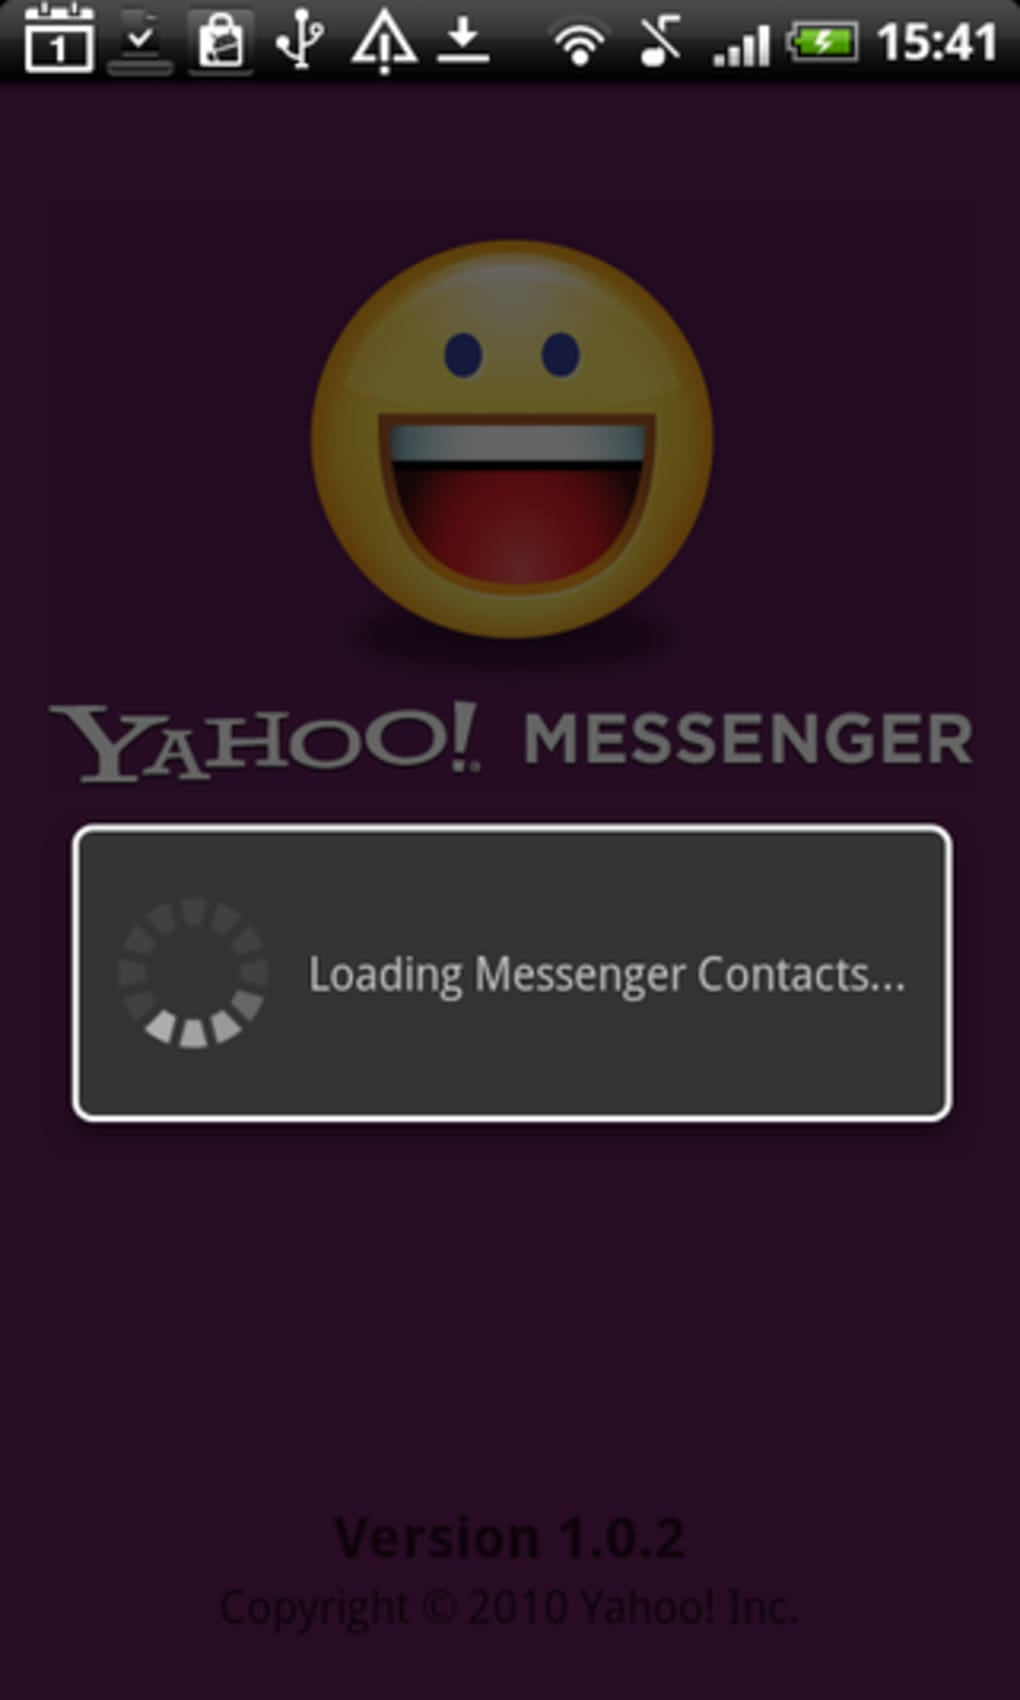 Yahoo messenger is finally shutting down; to be replaced by squirrel.